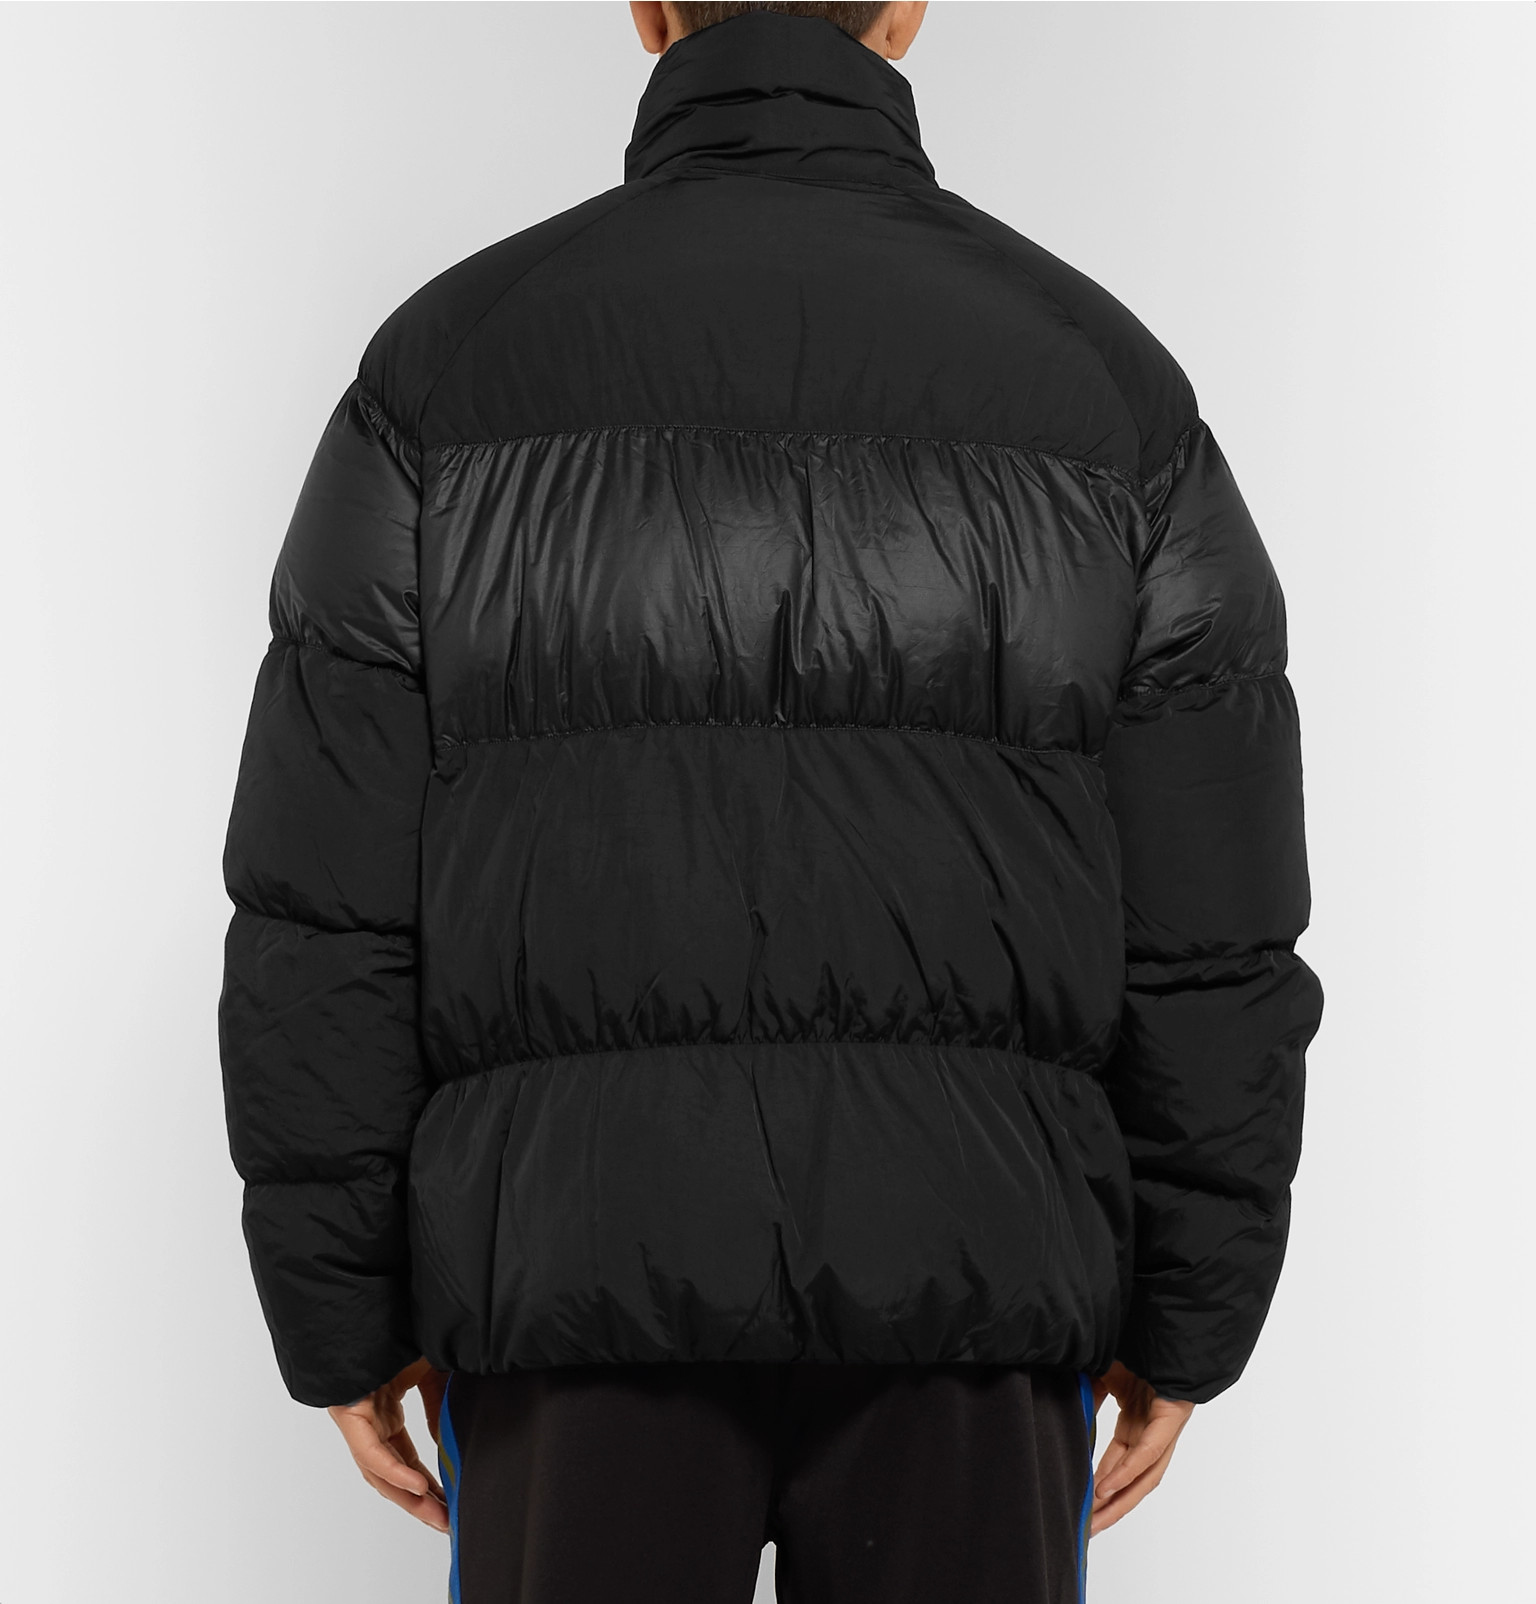 Nike Jacket Nylon Repellent Water Quilted Down qrnPg0qw